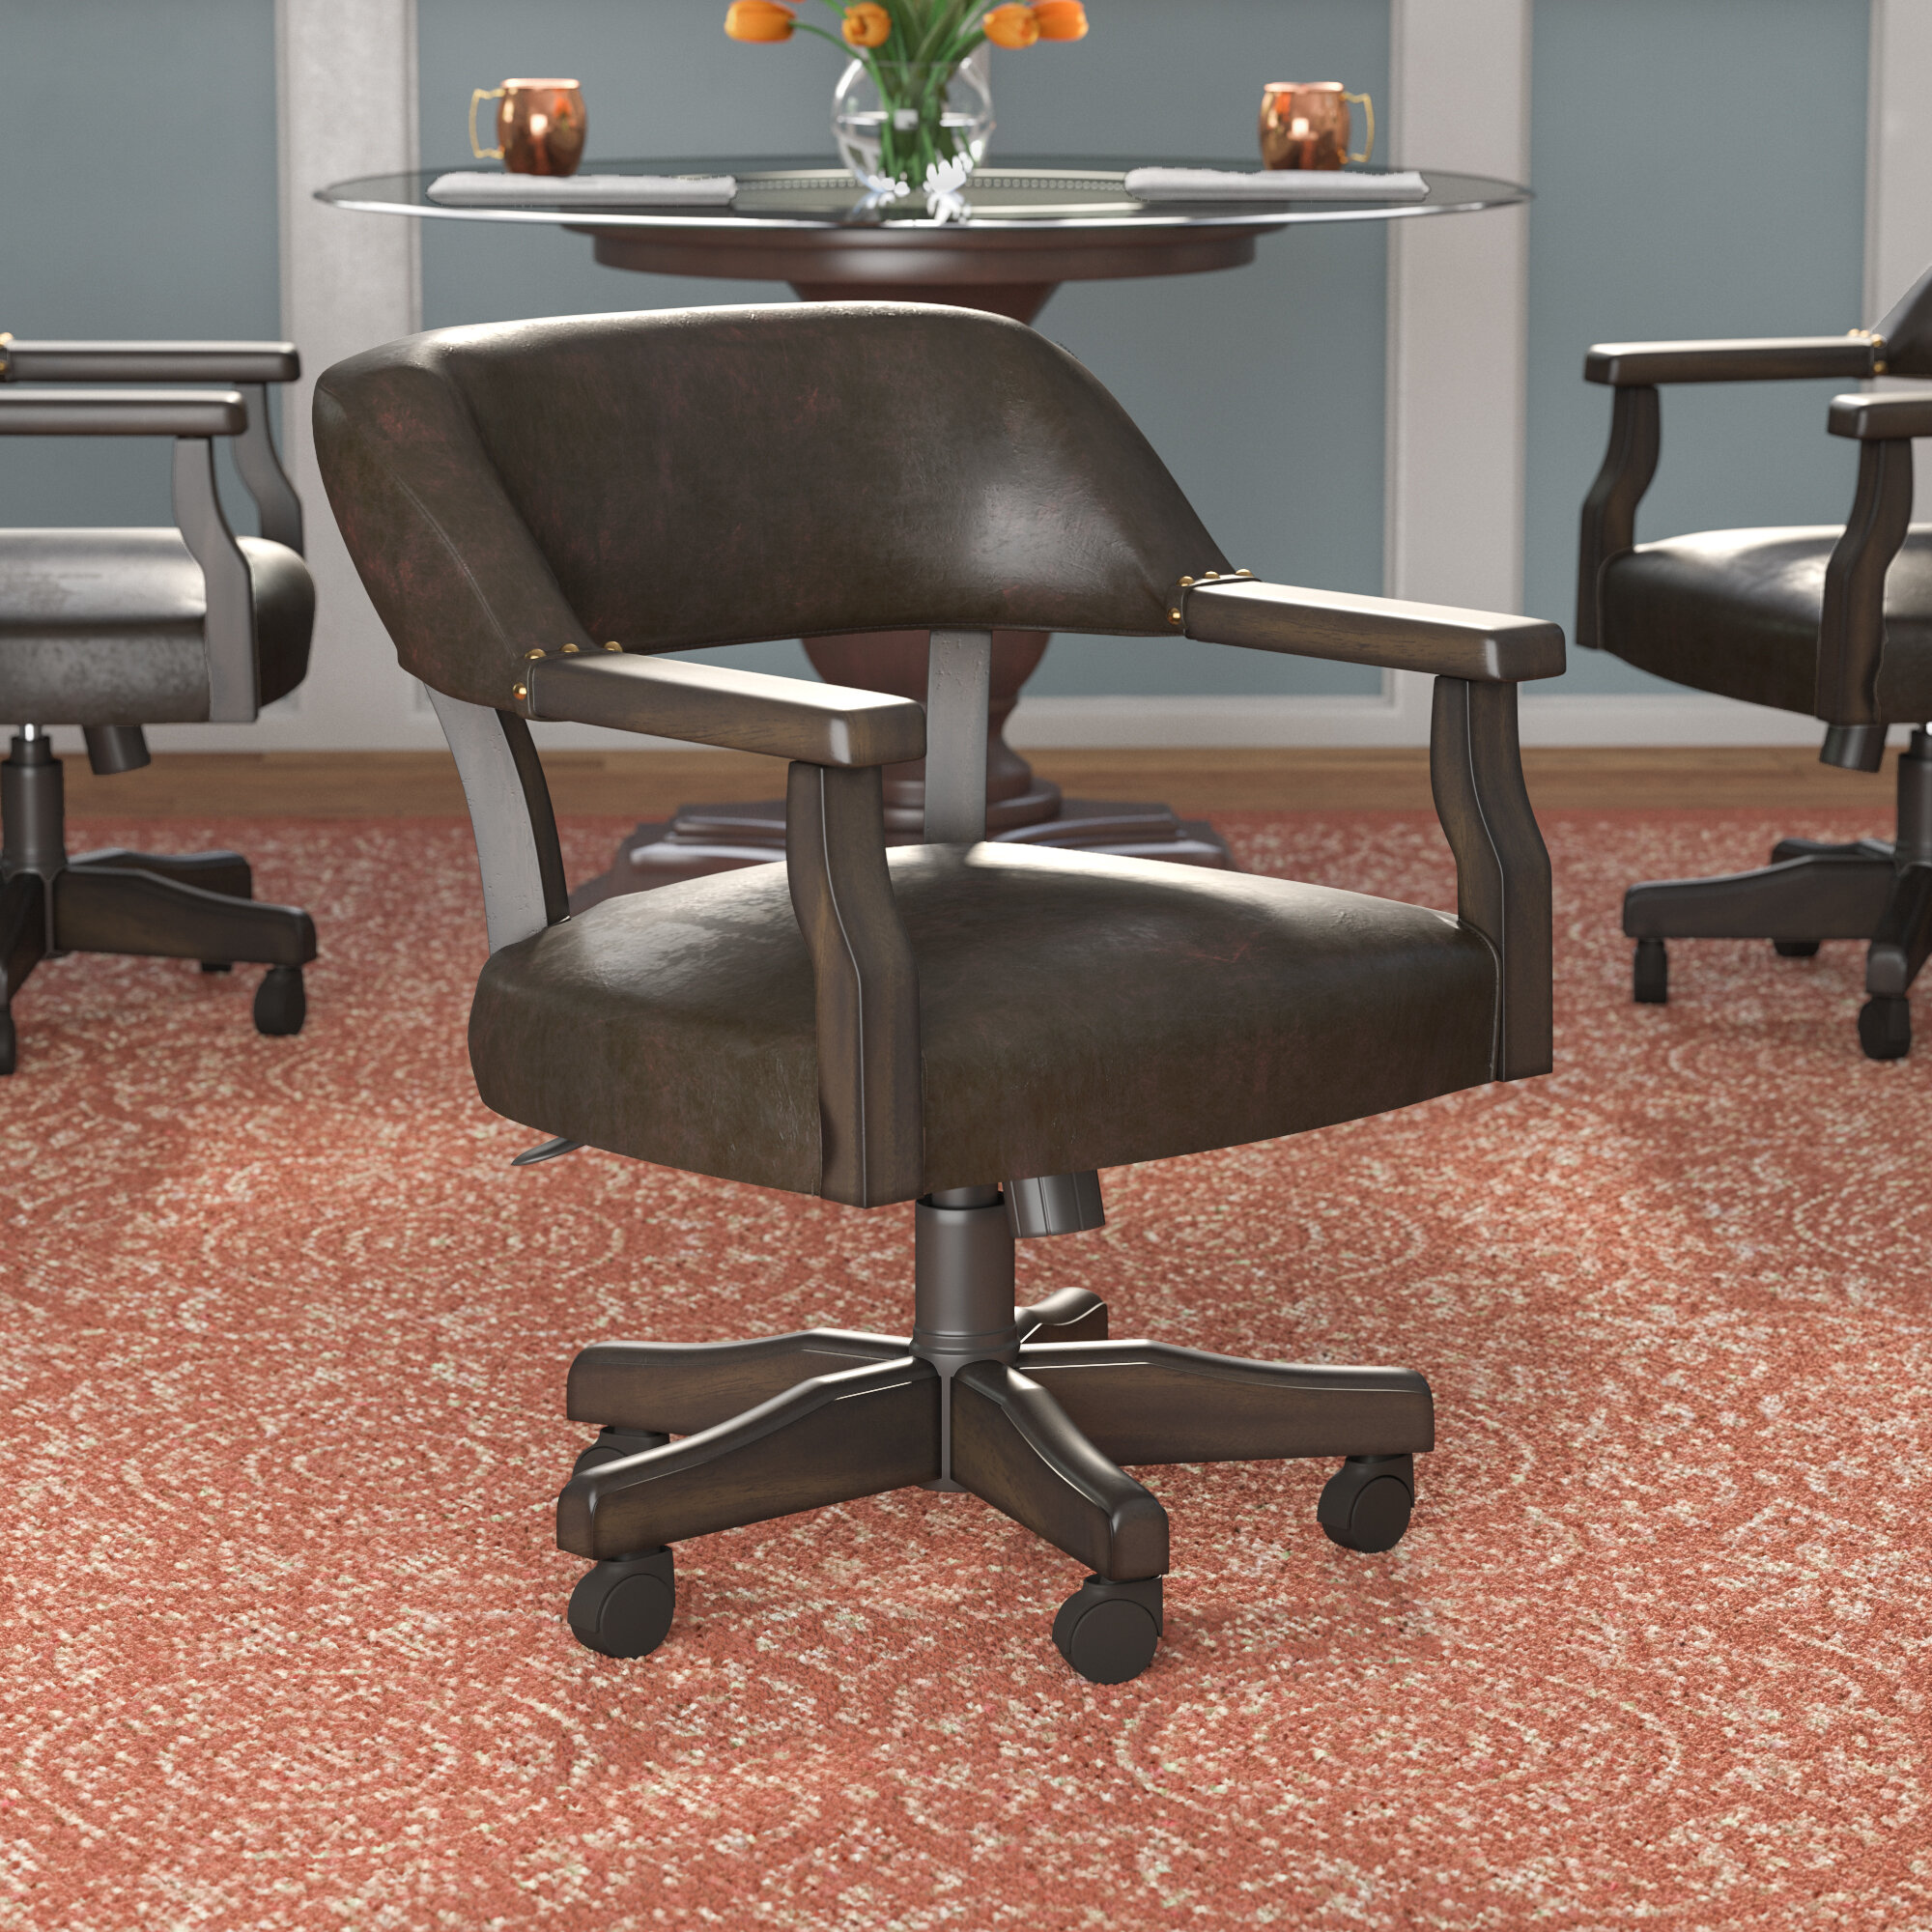 Casters Faux Leather Kitchen Dining Chairs You Ll Love In 2021 Wayfair